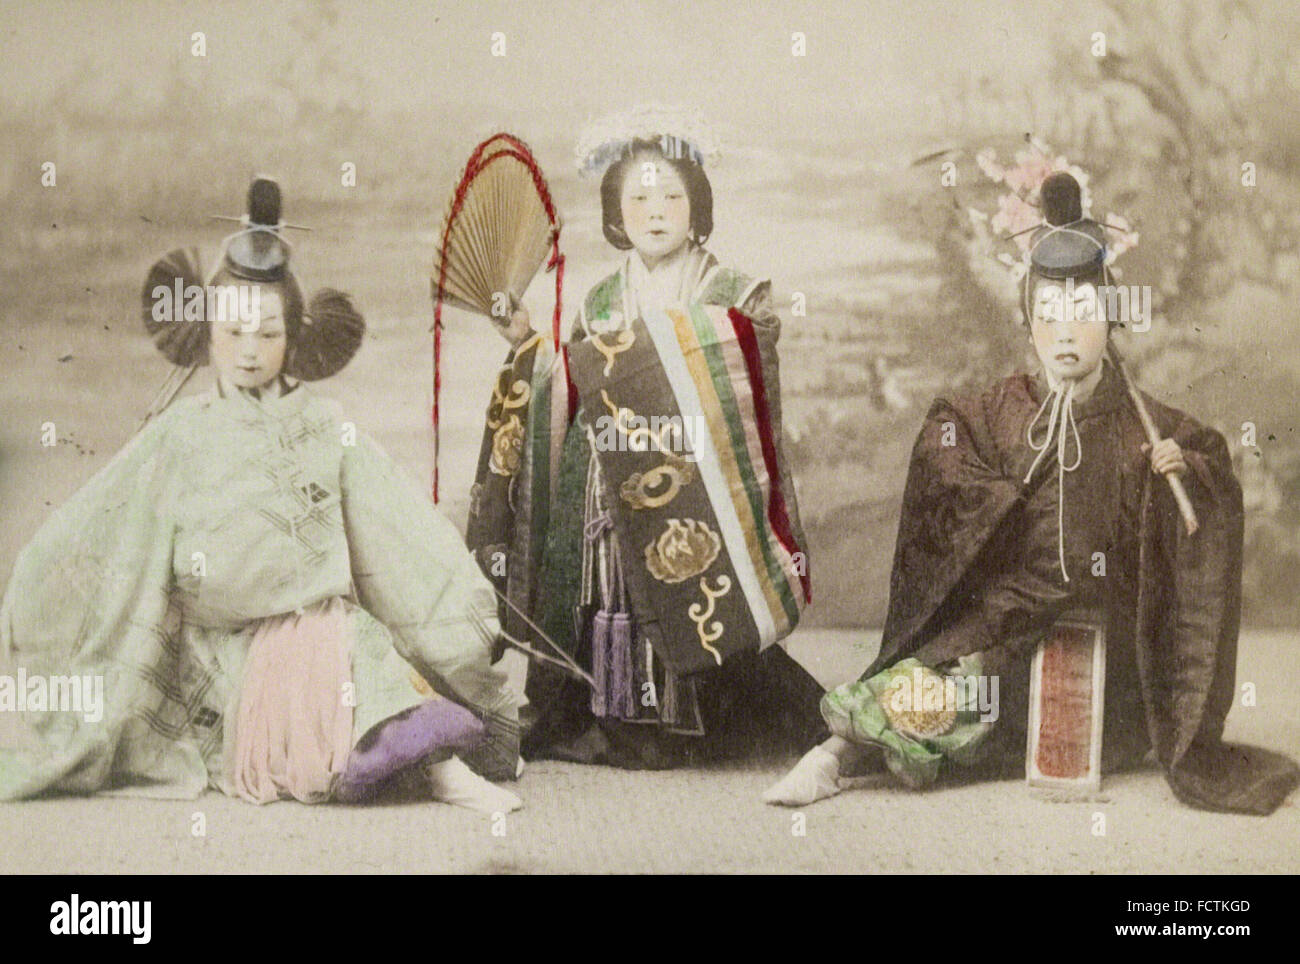 Kusakabe Kimbei - girls performing historical dance - Stock Image